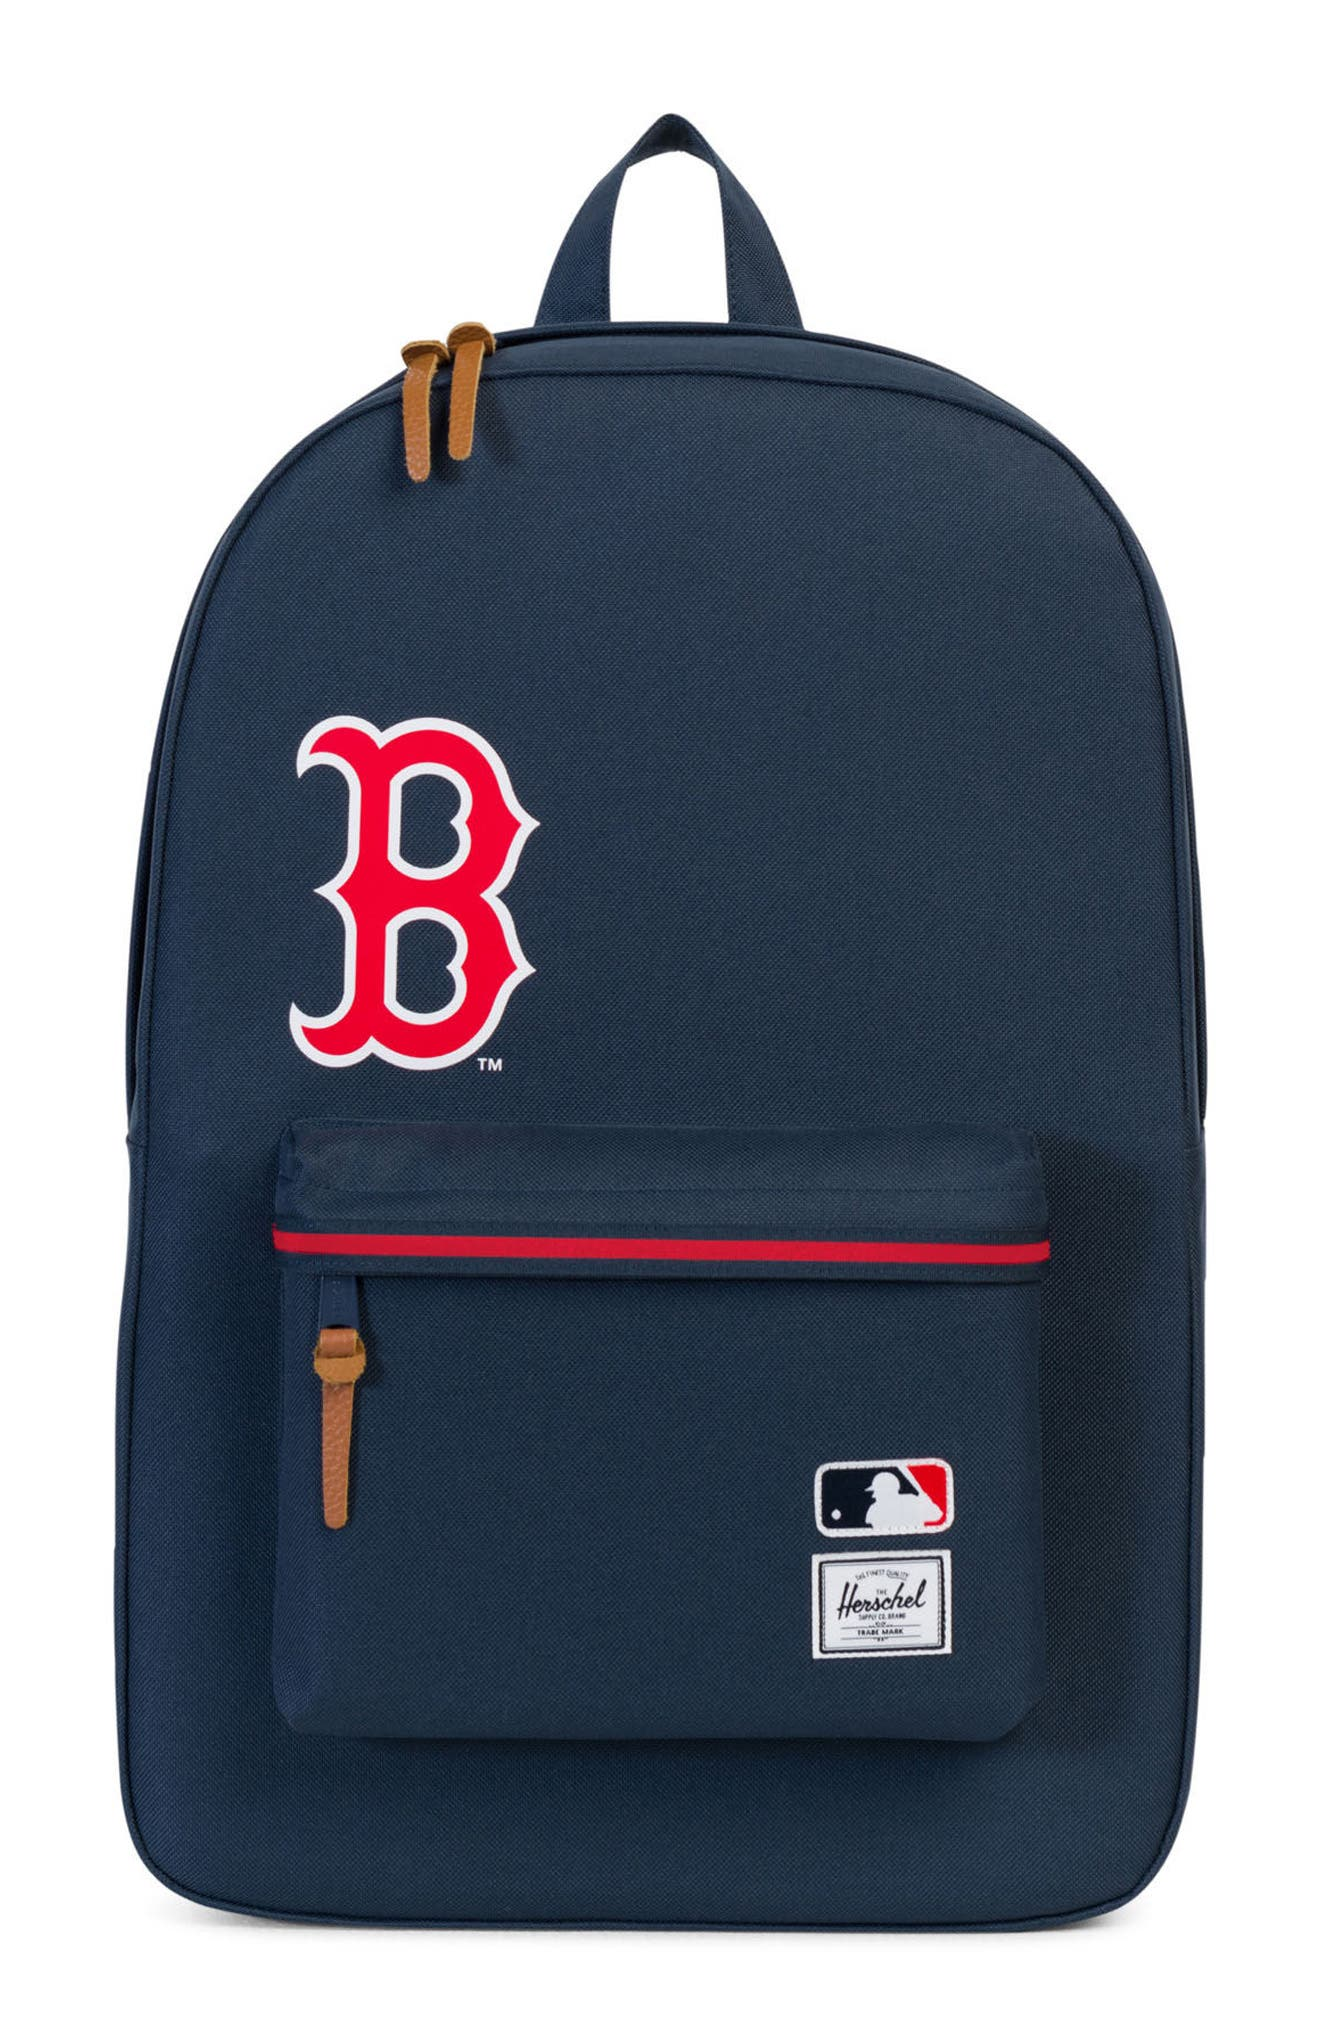 Alternate Image 1 Selected - Herschel Supply Co. Heritage Boston Red Sox Backpack